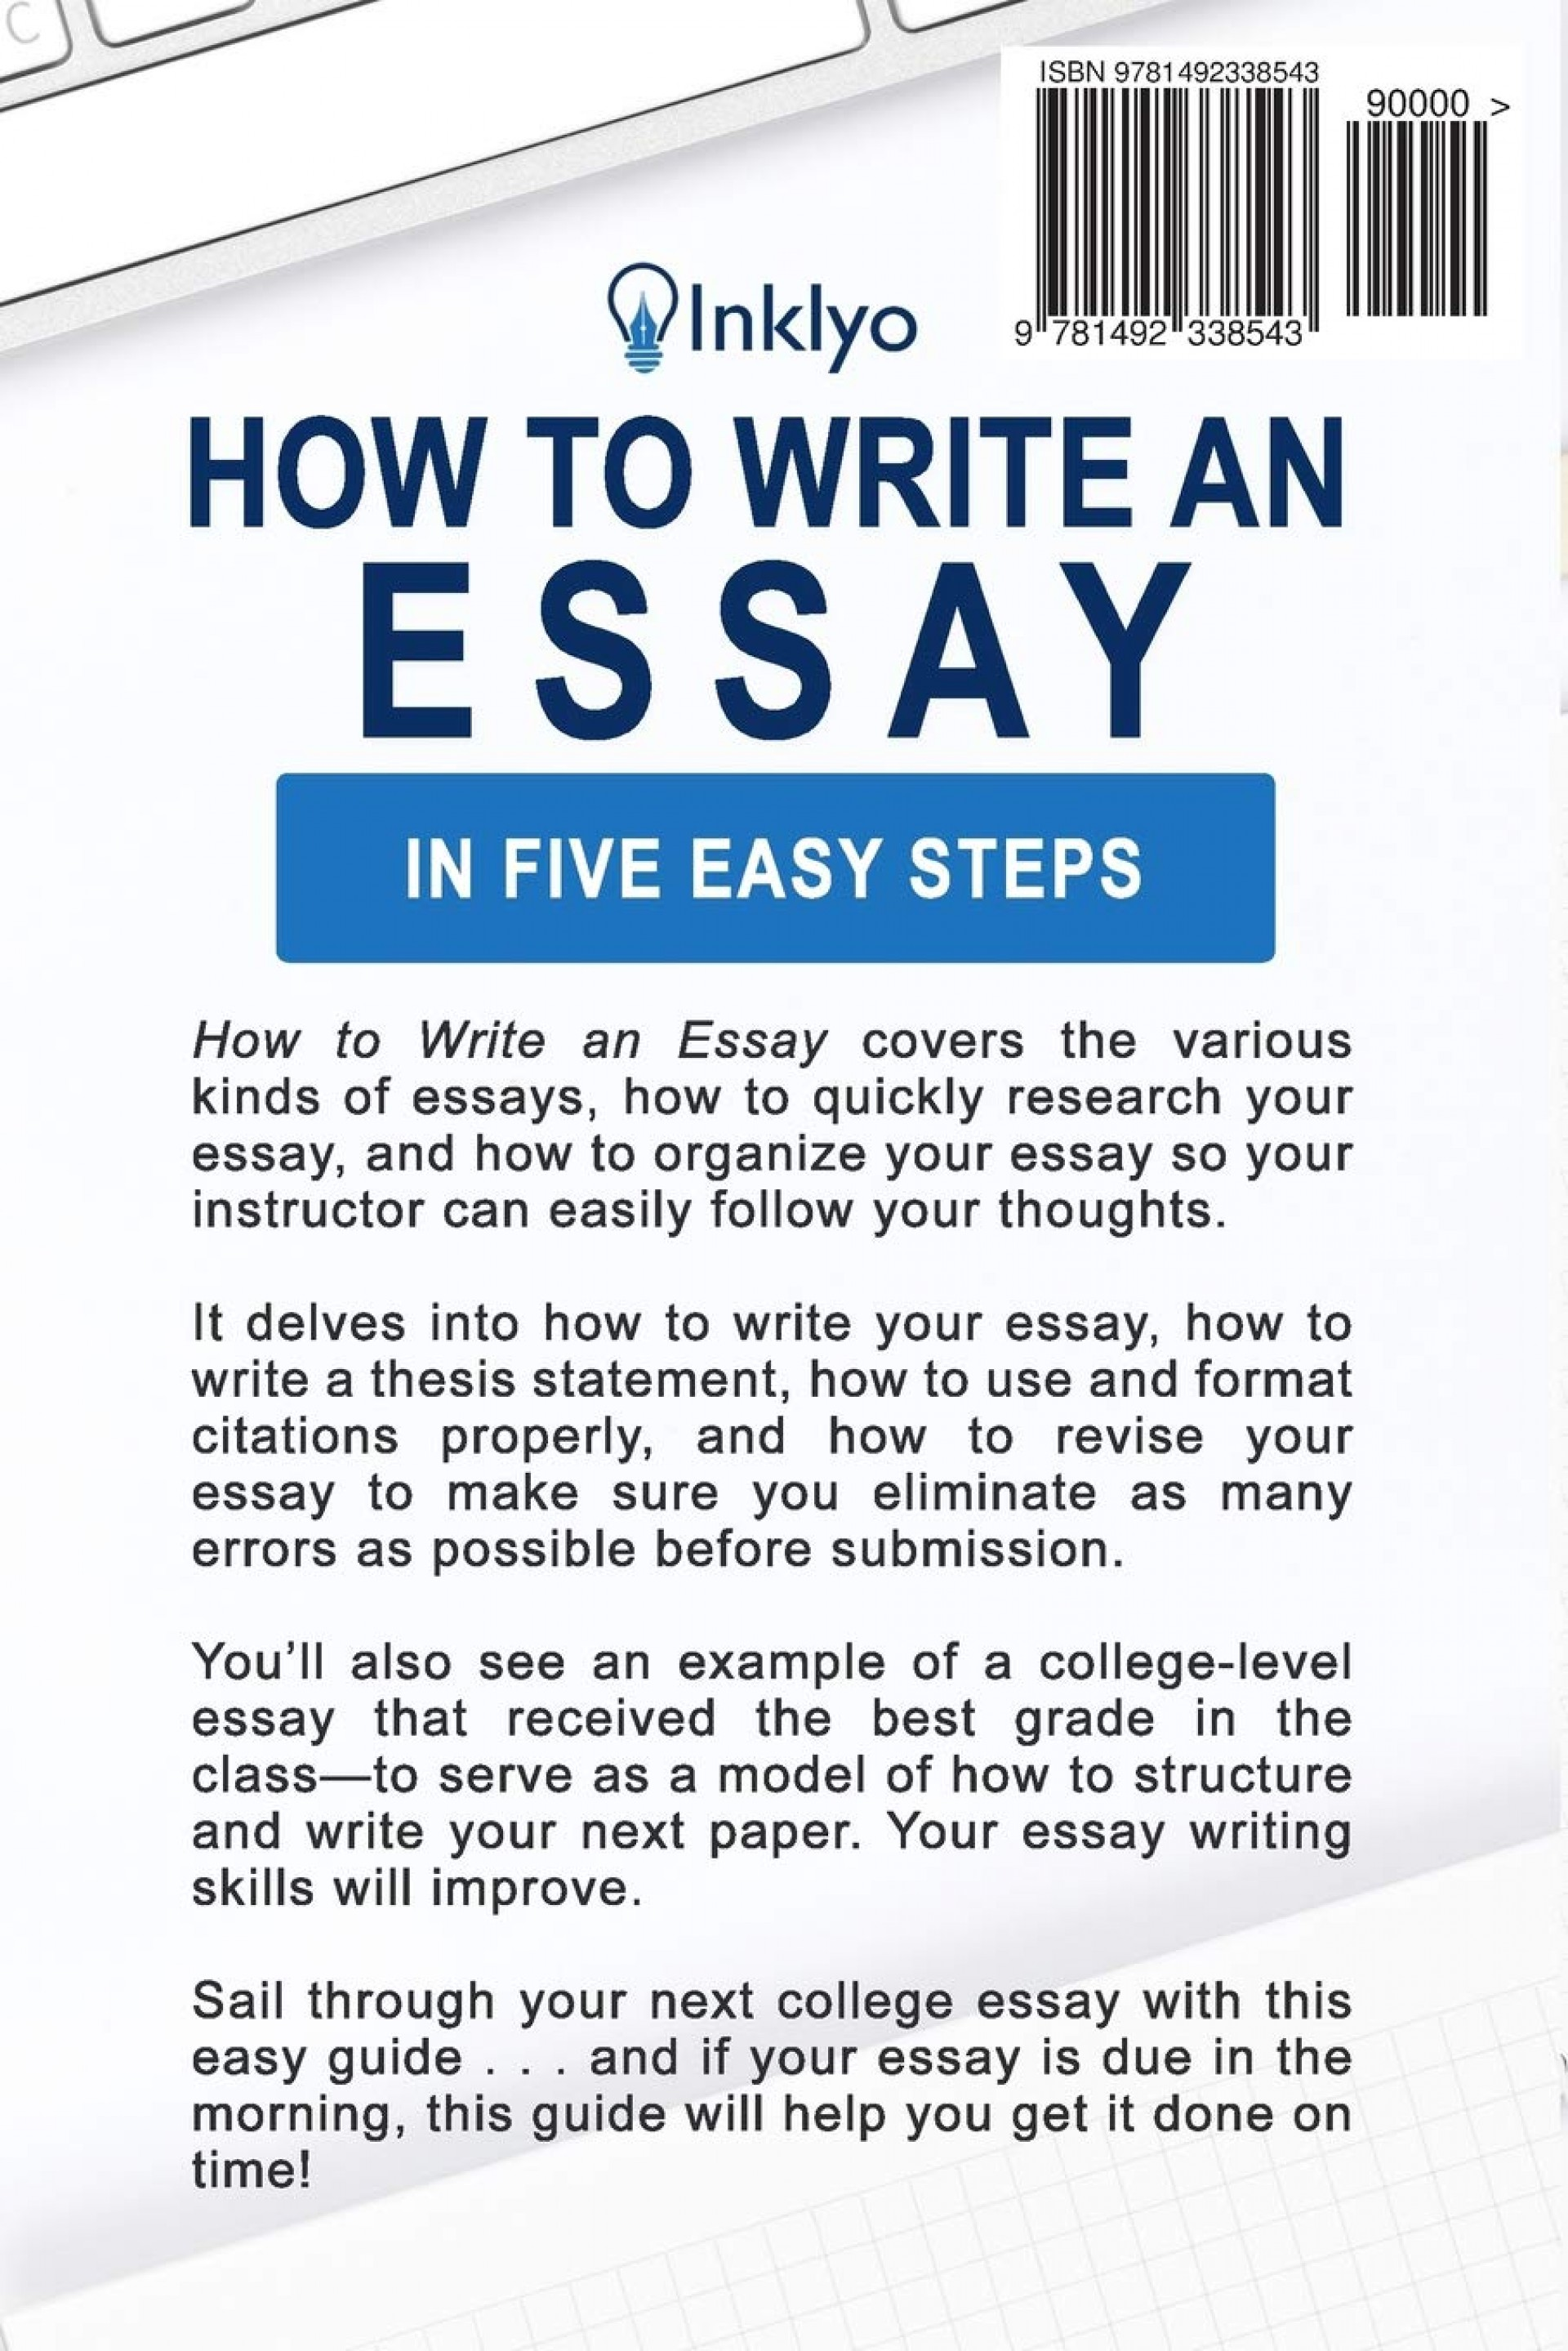 004 Essay Example How To Write And Unique An Outline 6th Grade Conclusion In Mla Format 1920